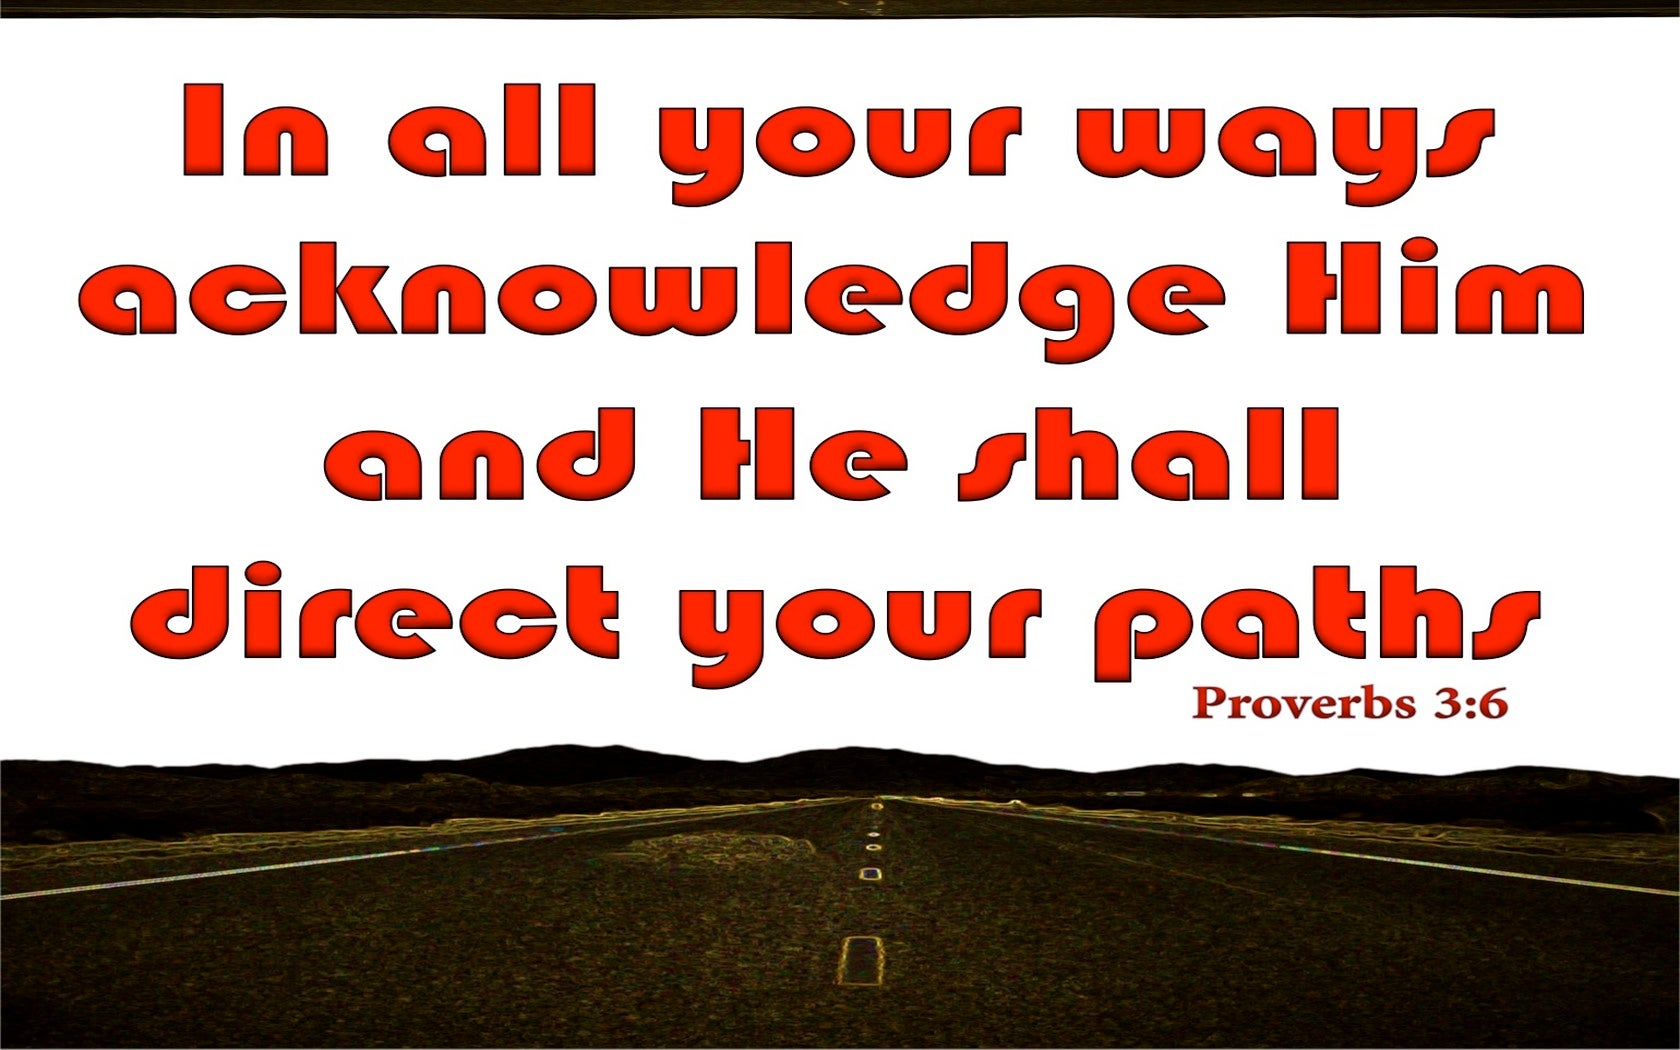 Proverbs 3:6 In All Your Ways Acknowledge Him (red)